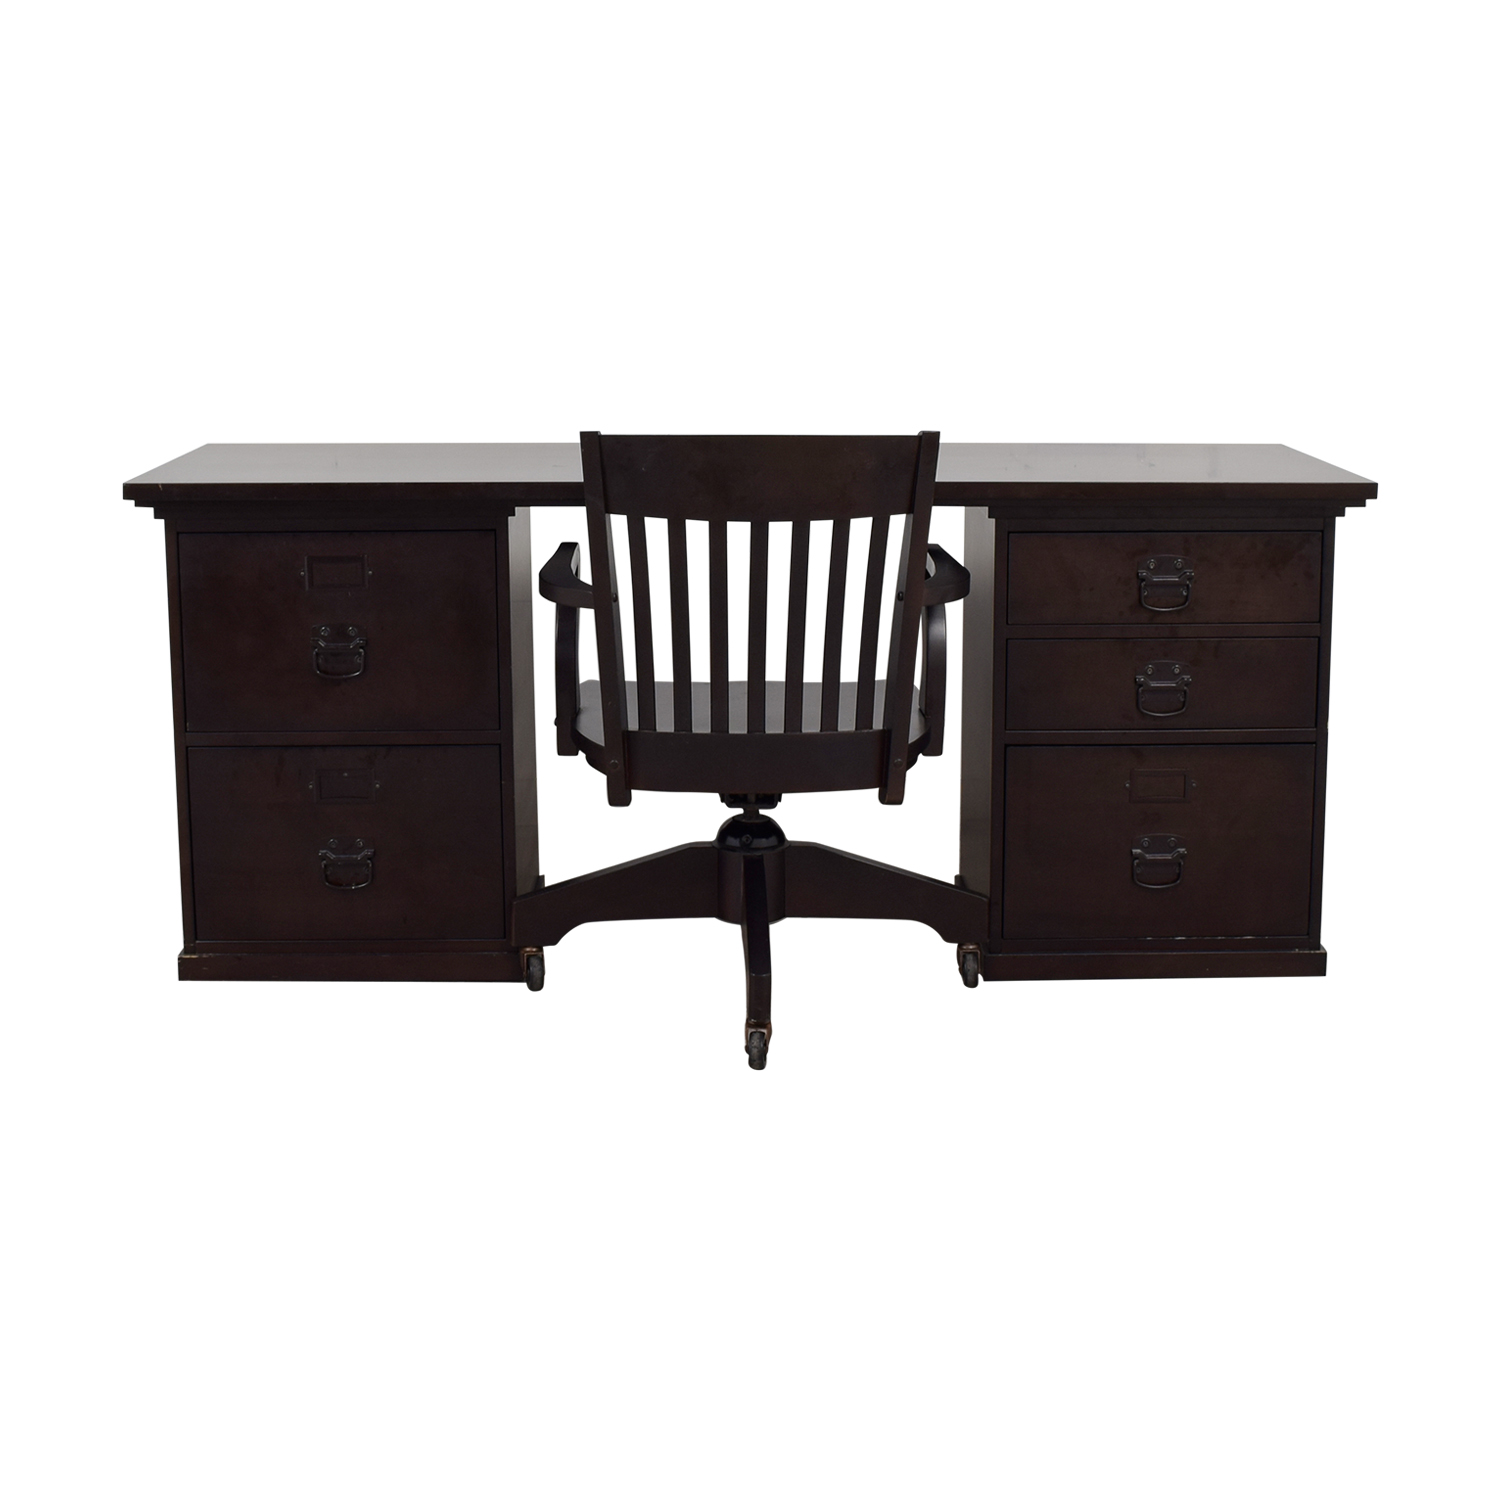 Pottery Barn Pottery Barn Espresso Bedford Five Drawer Rectangular Desk with Chair coupon